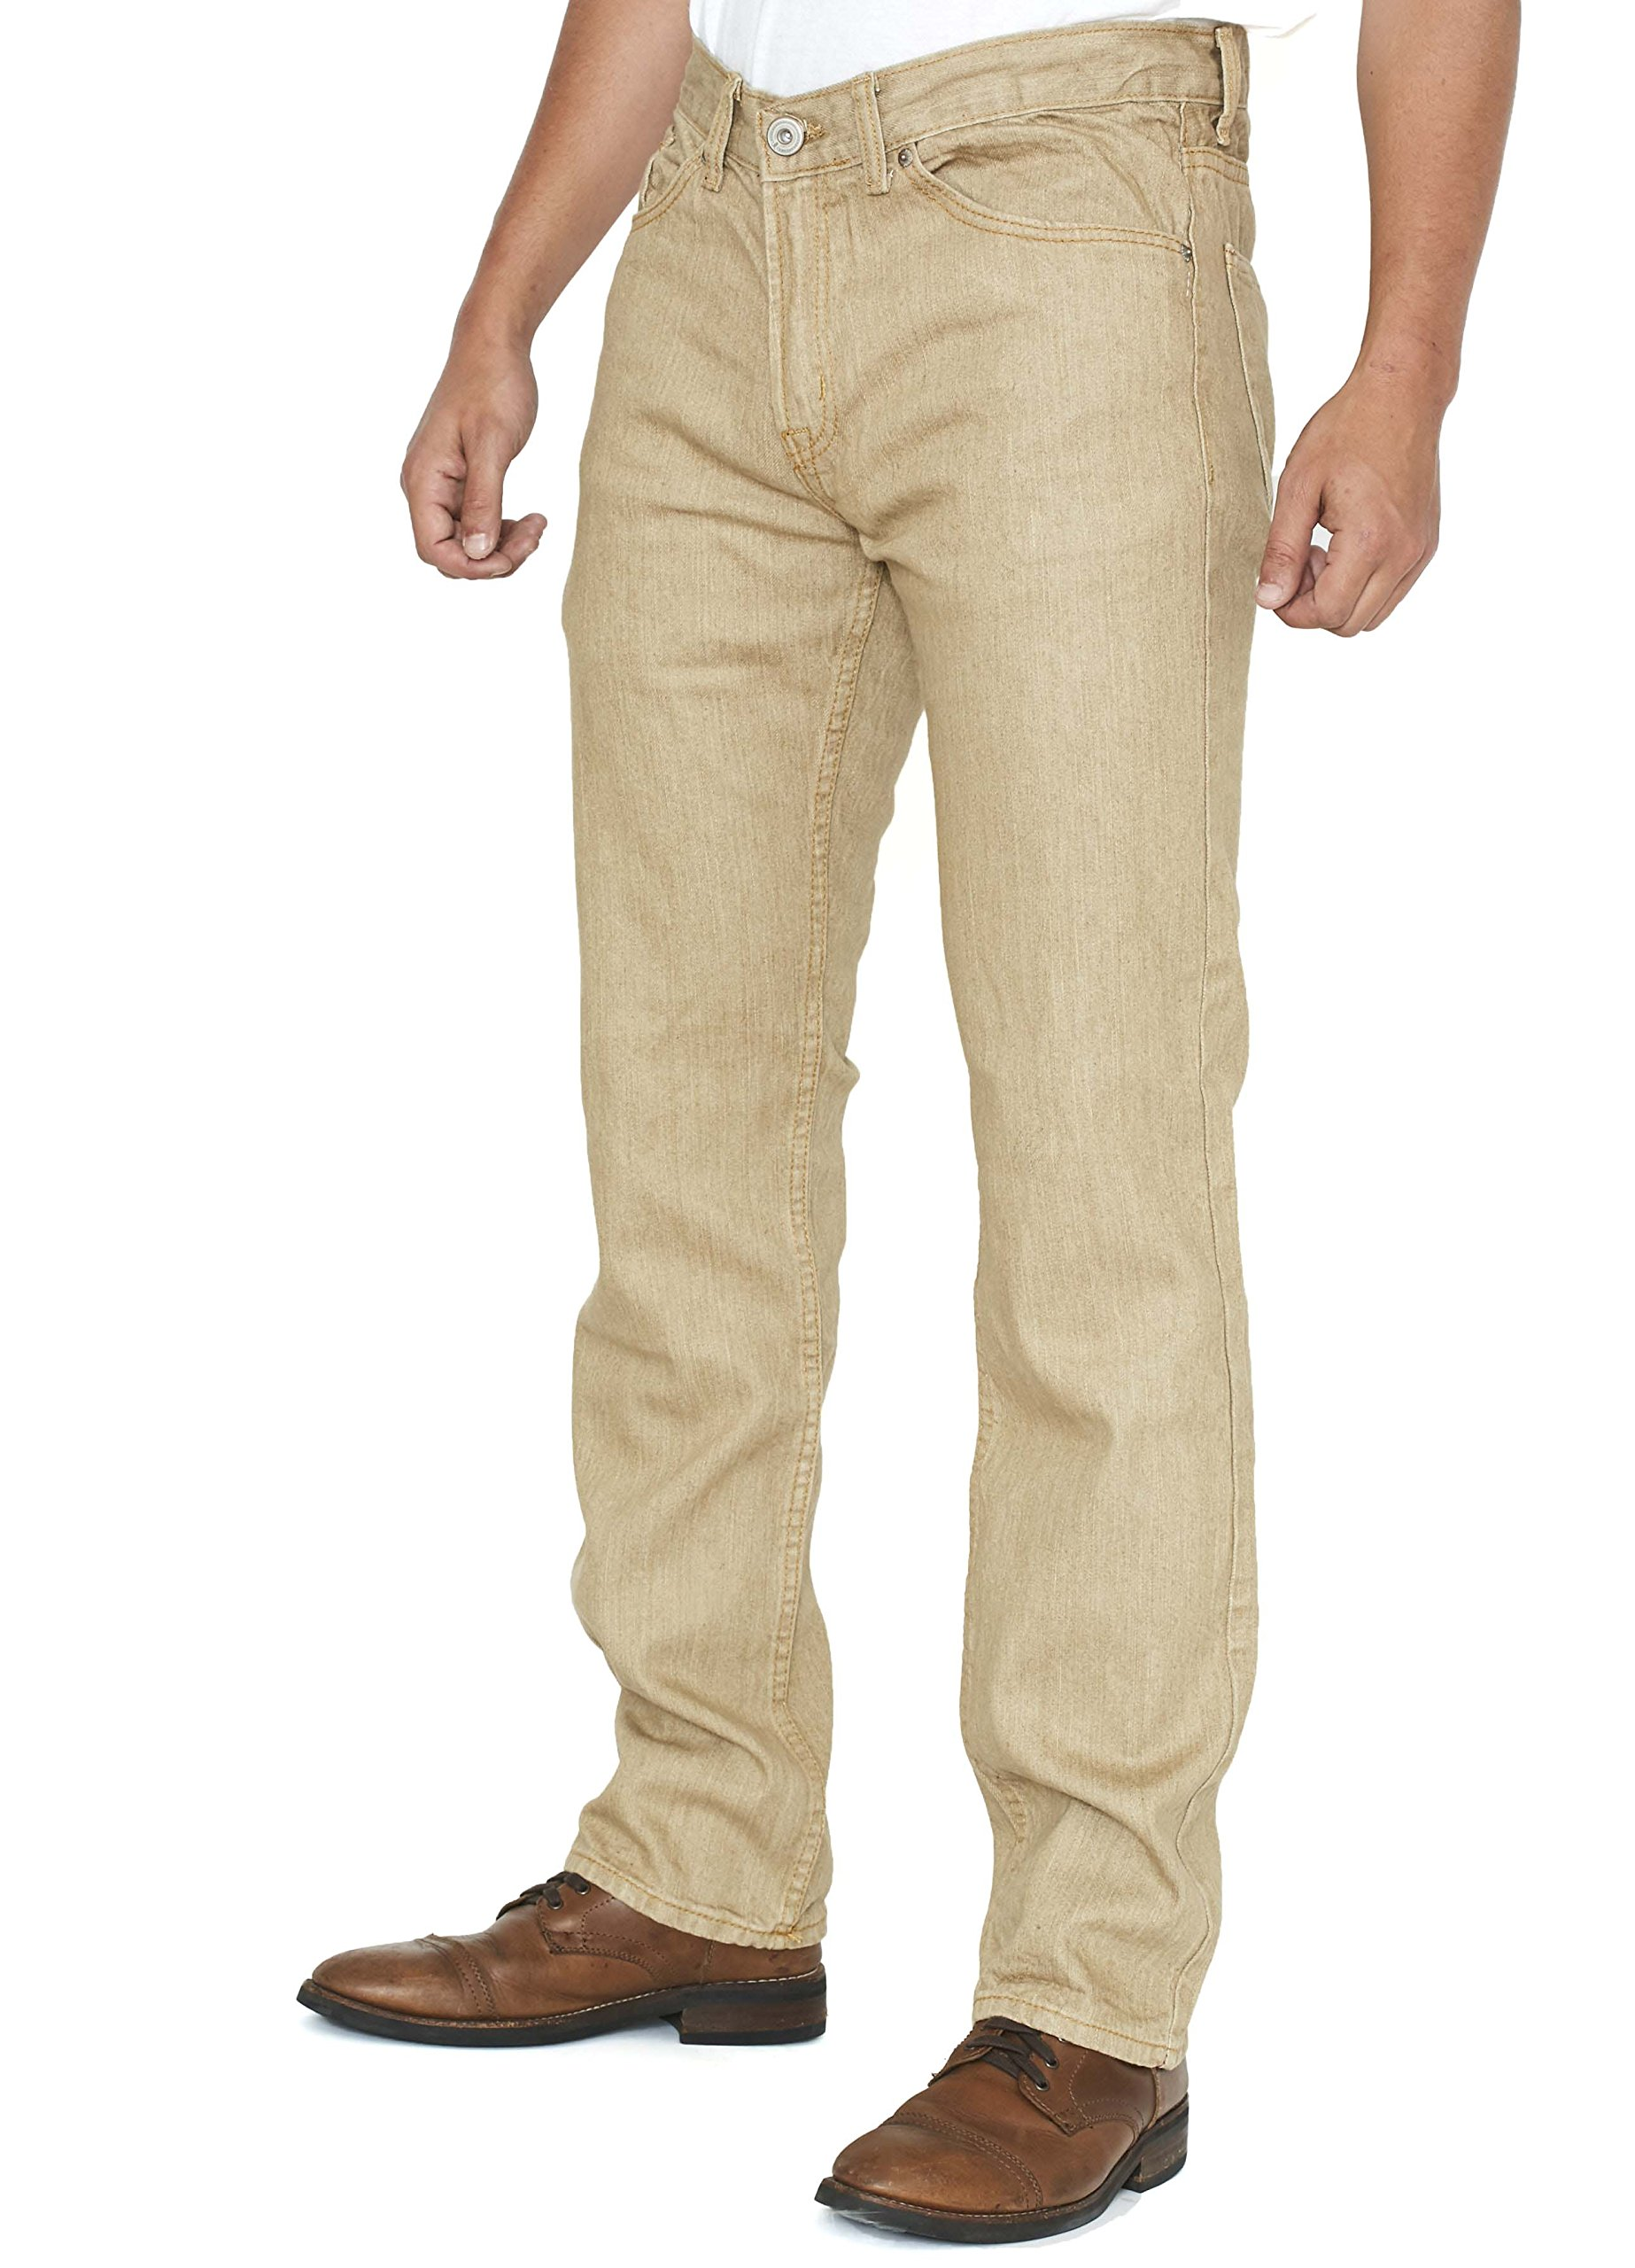 Slim Fit Men's Jeans - Tan - Size 30/32 - By New York Avenue